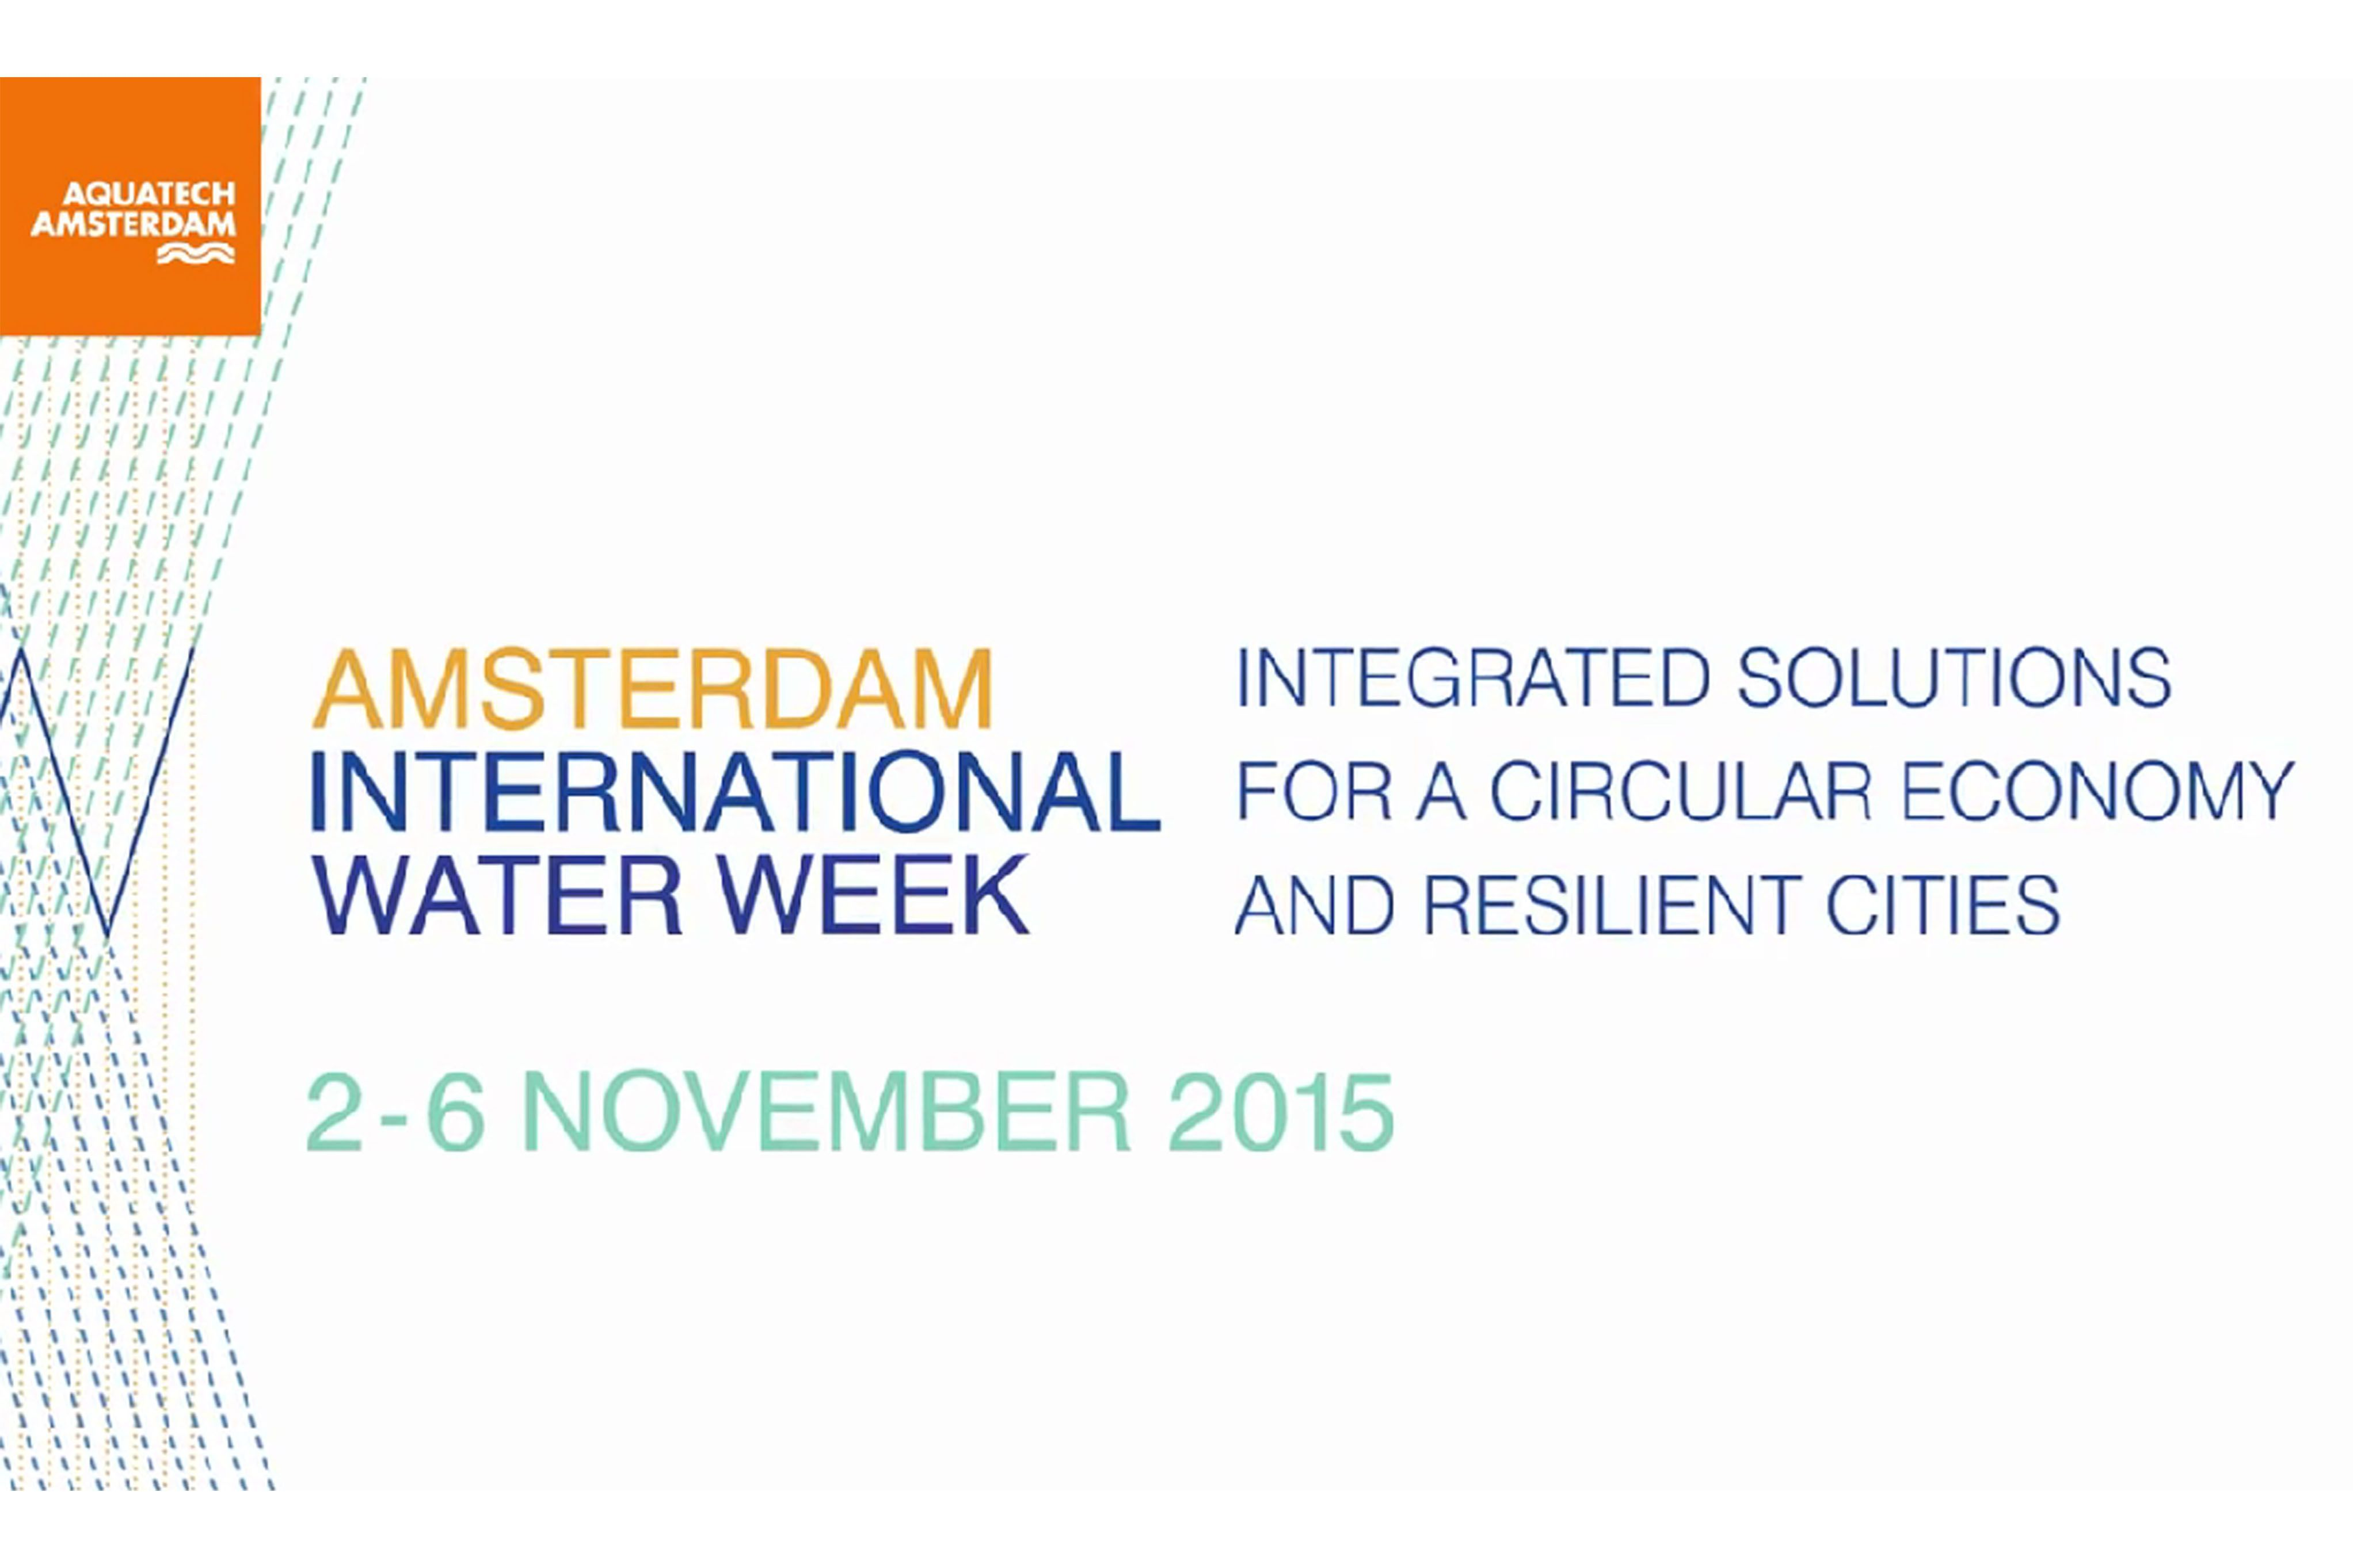 IWW AMSTERDAM INTERNATIONAL WATER WEEK 2015